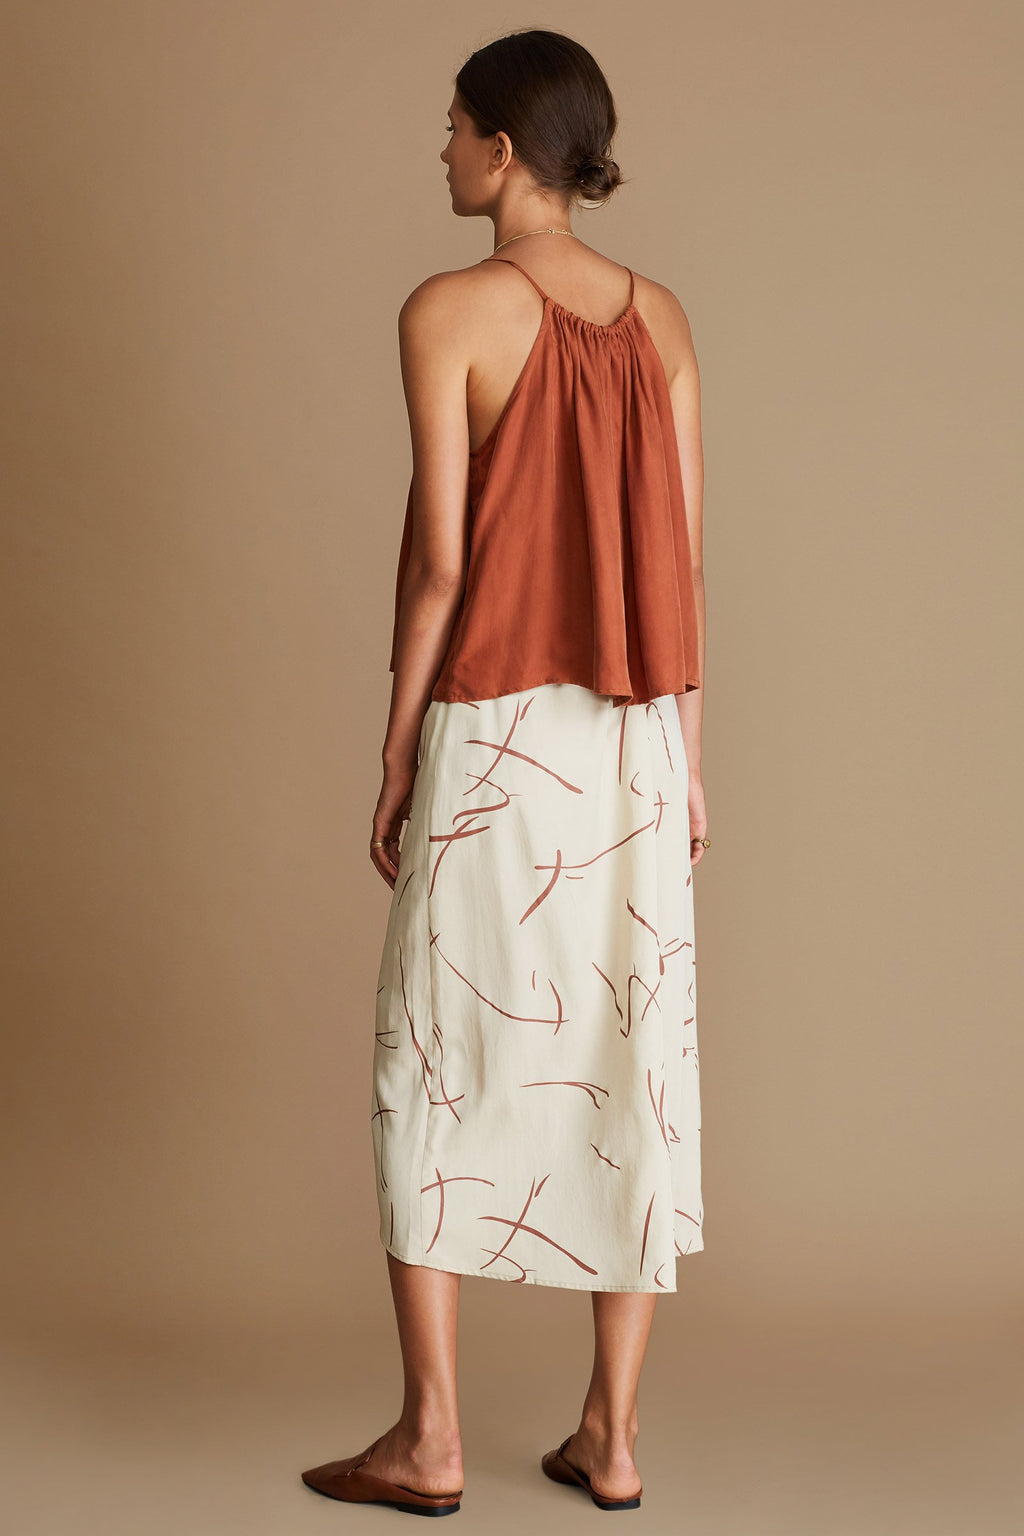 Sancia Mila Top in terracotta online at PAYA Boutique - Free delivery to Australia